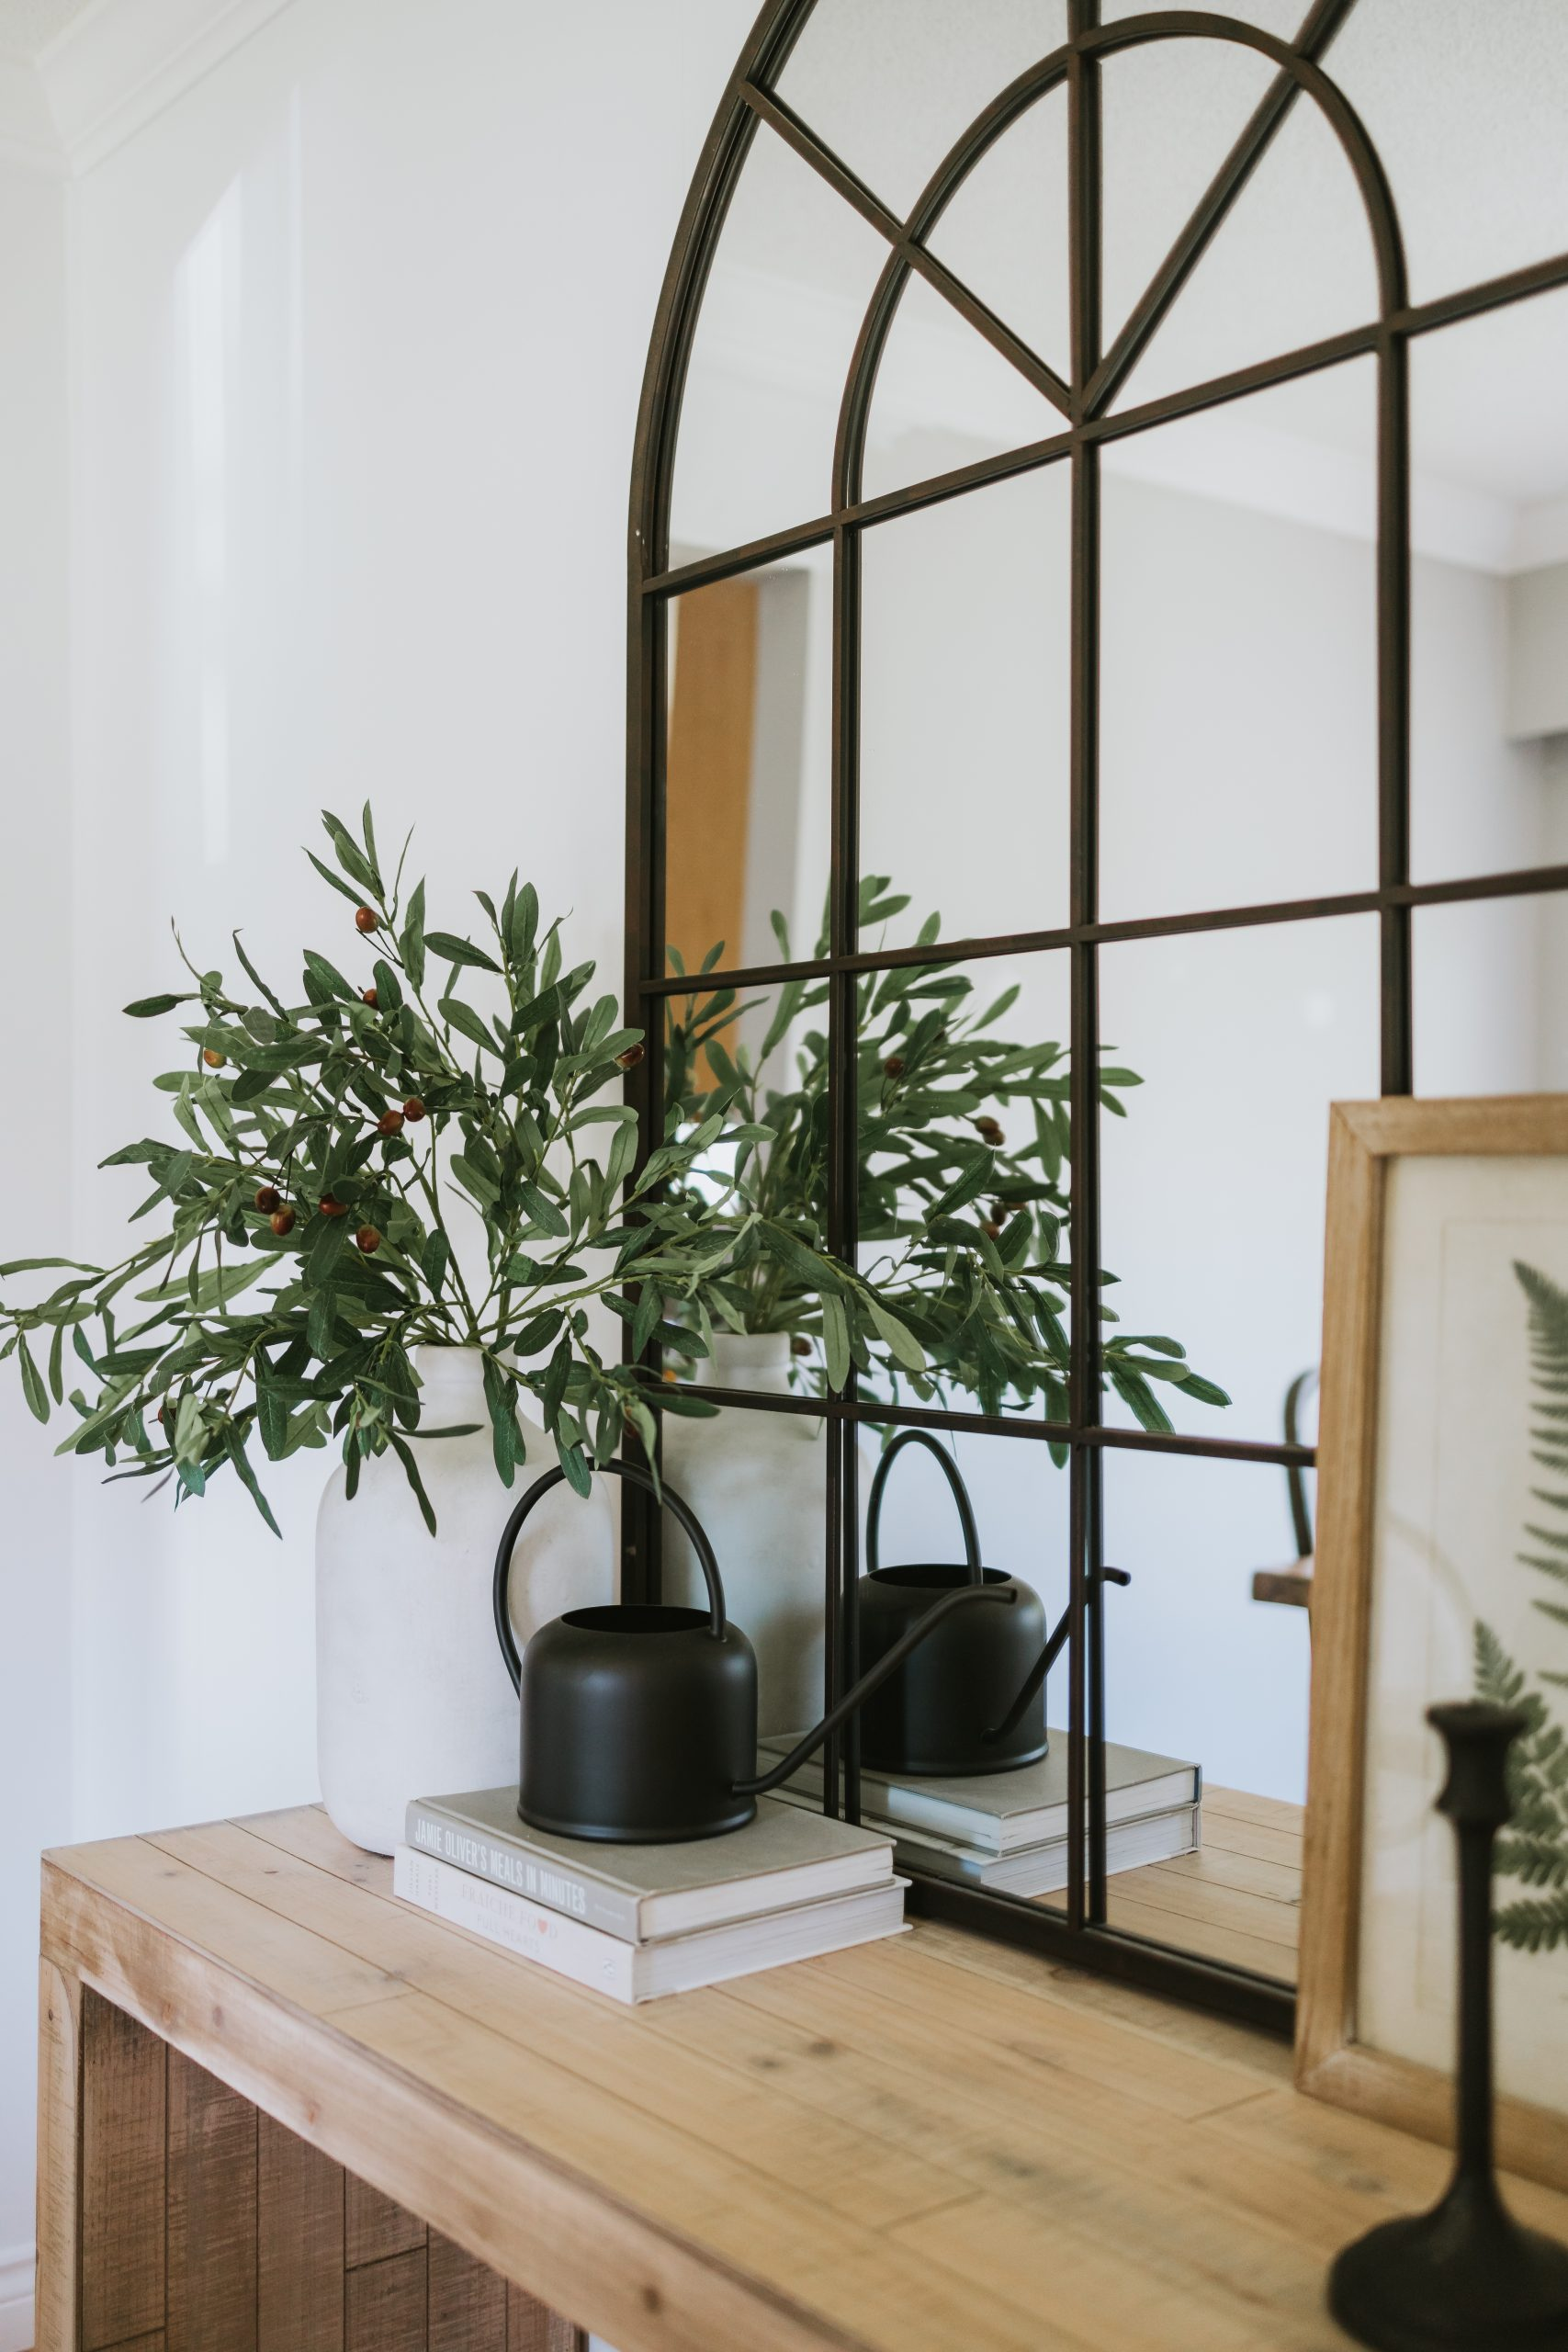 The Best Faux Houseplants. If you kill all real plants, here are some of my favourite faux plants for your home